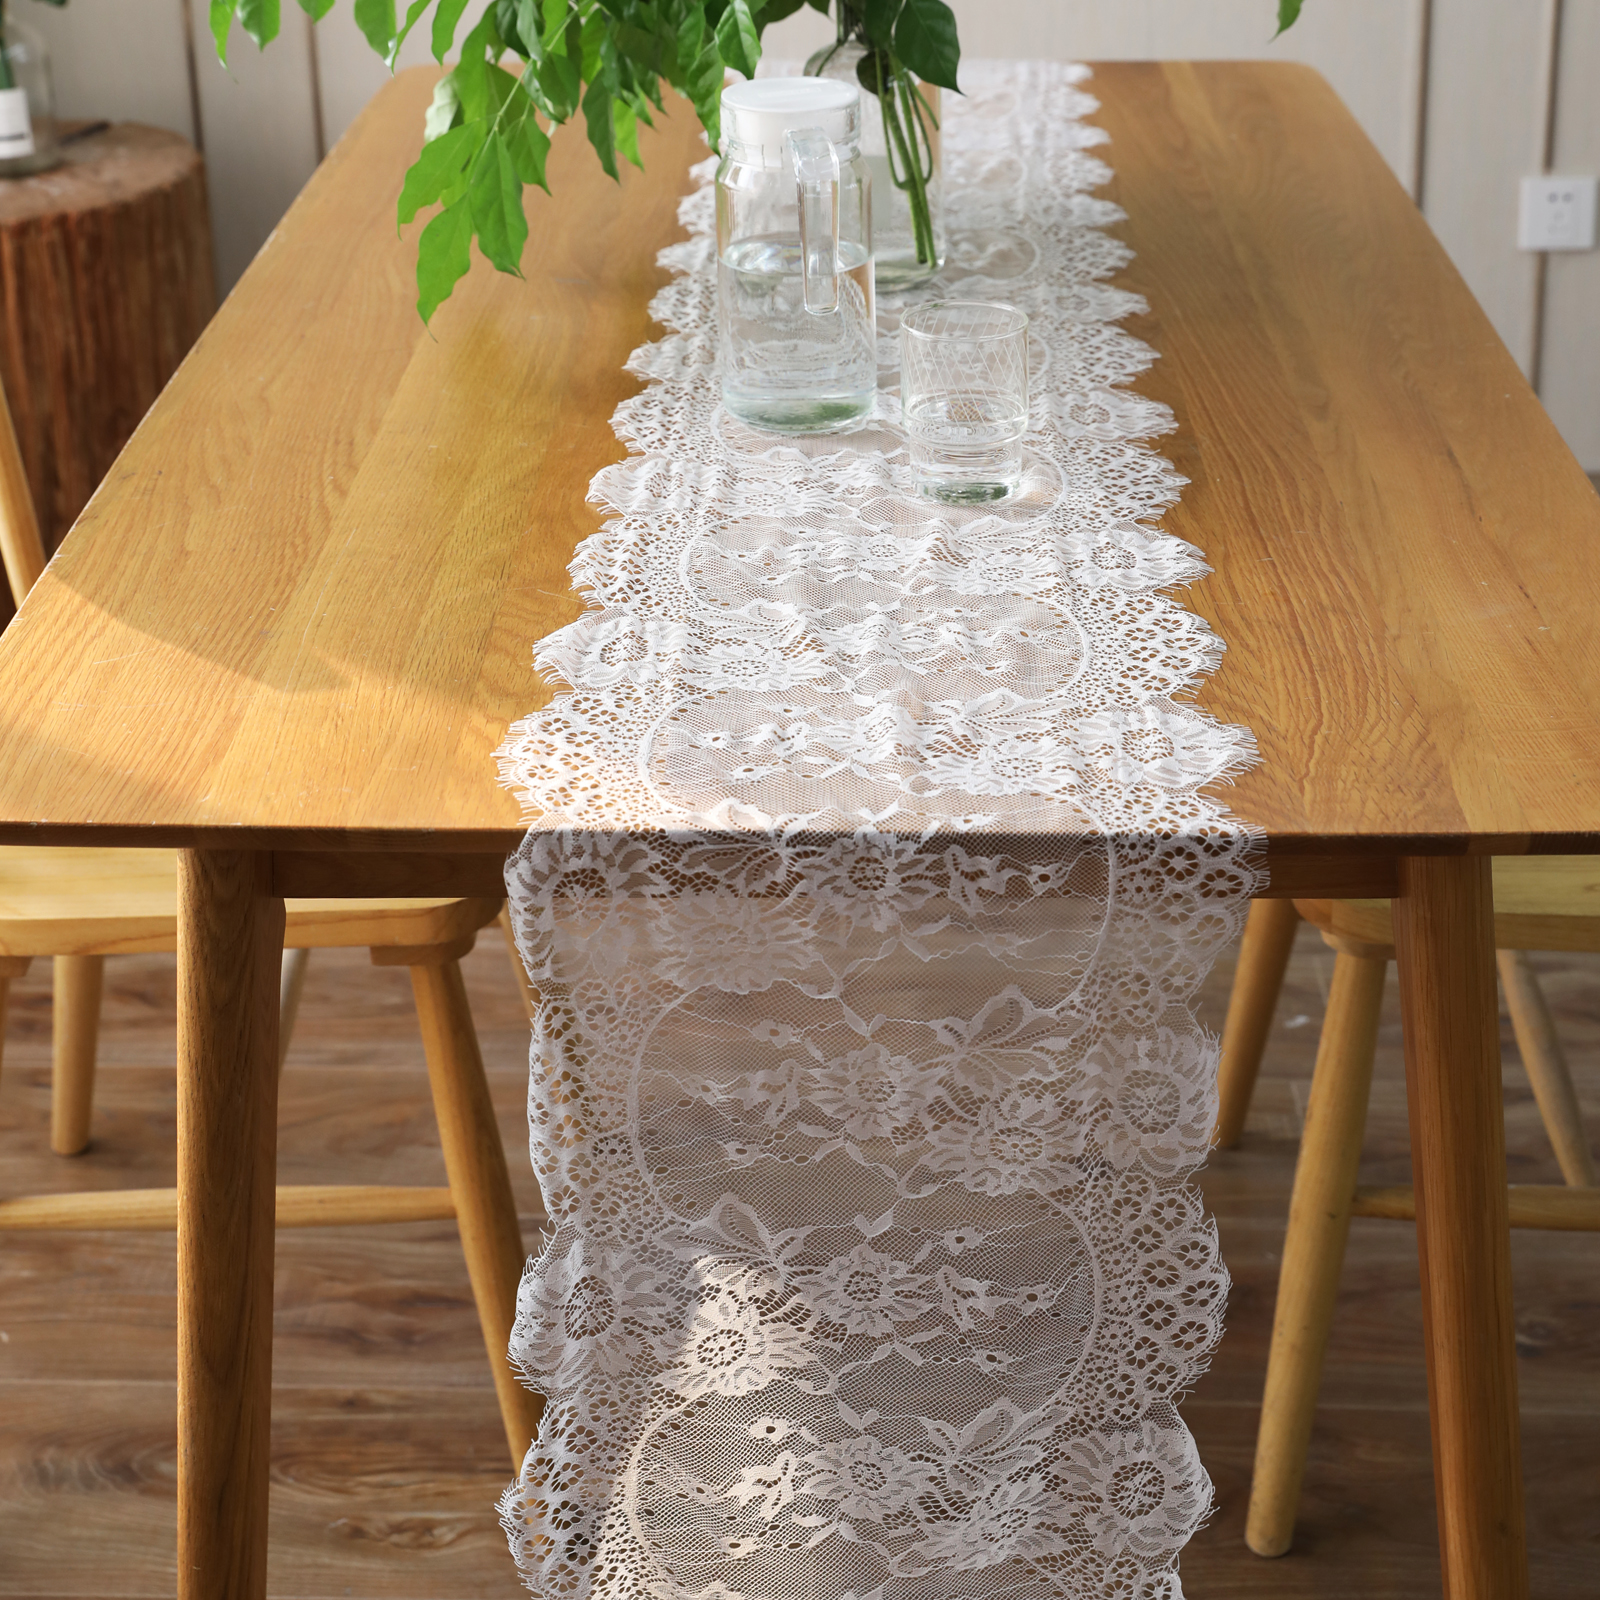 1pcs 35x300cm White Floral Lace Table Runner Black Table Cover Chair Sash for Banquet Baptism Wedding Party Table Decoration